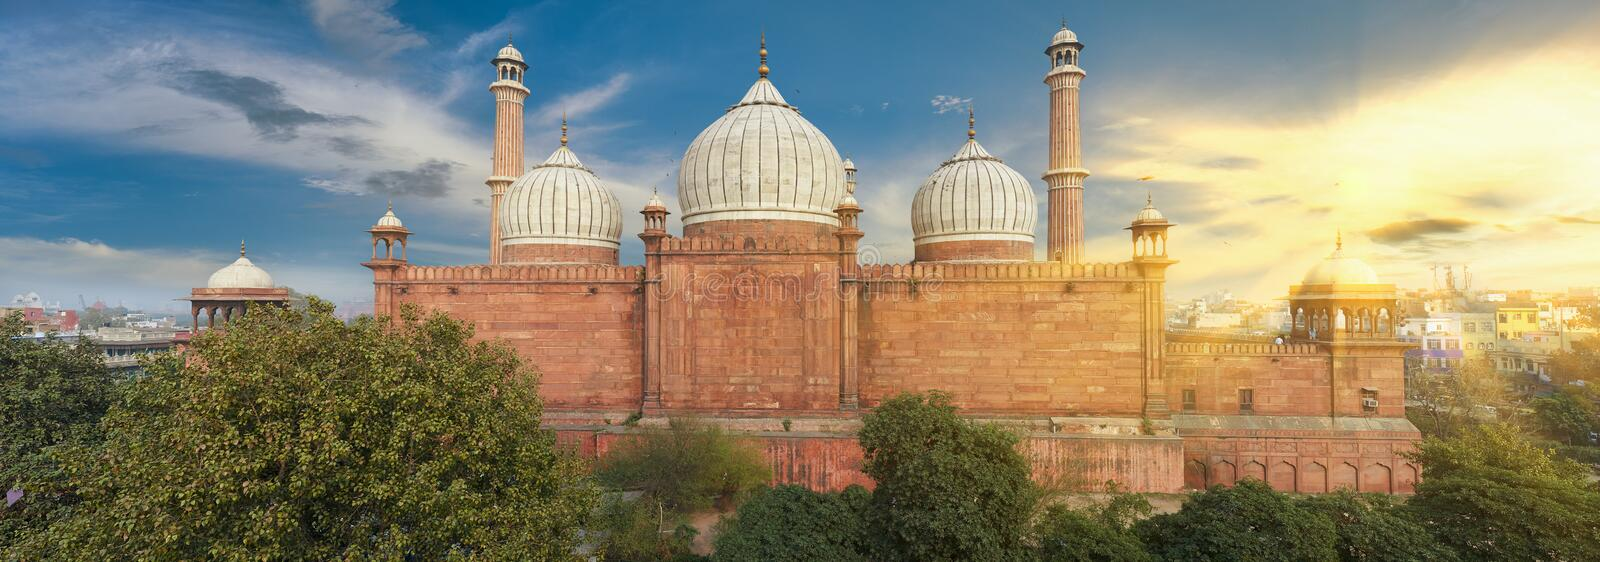 Jama Masjid Mosque, Old Delhi, India. An aerial view of the Jama Masjid mosque overlooking Old Delhi, India stock images